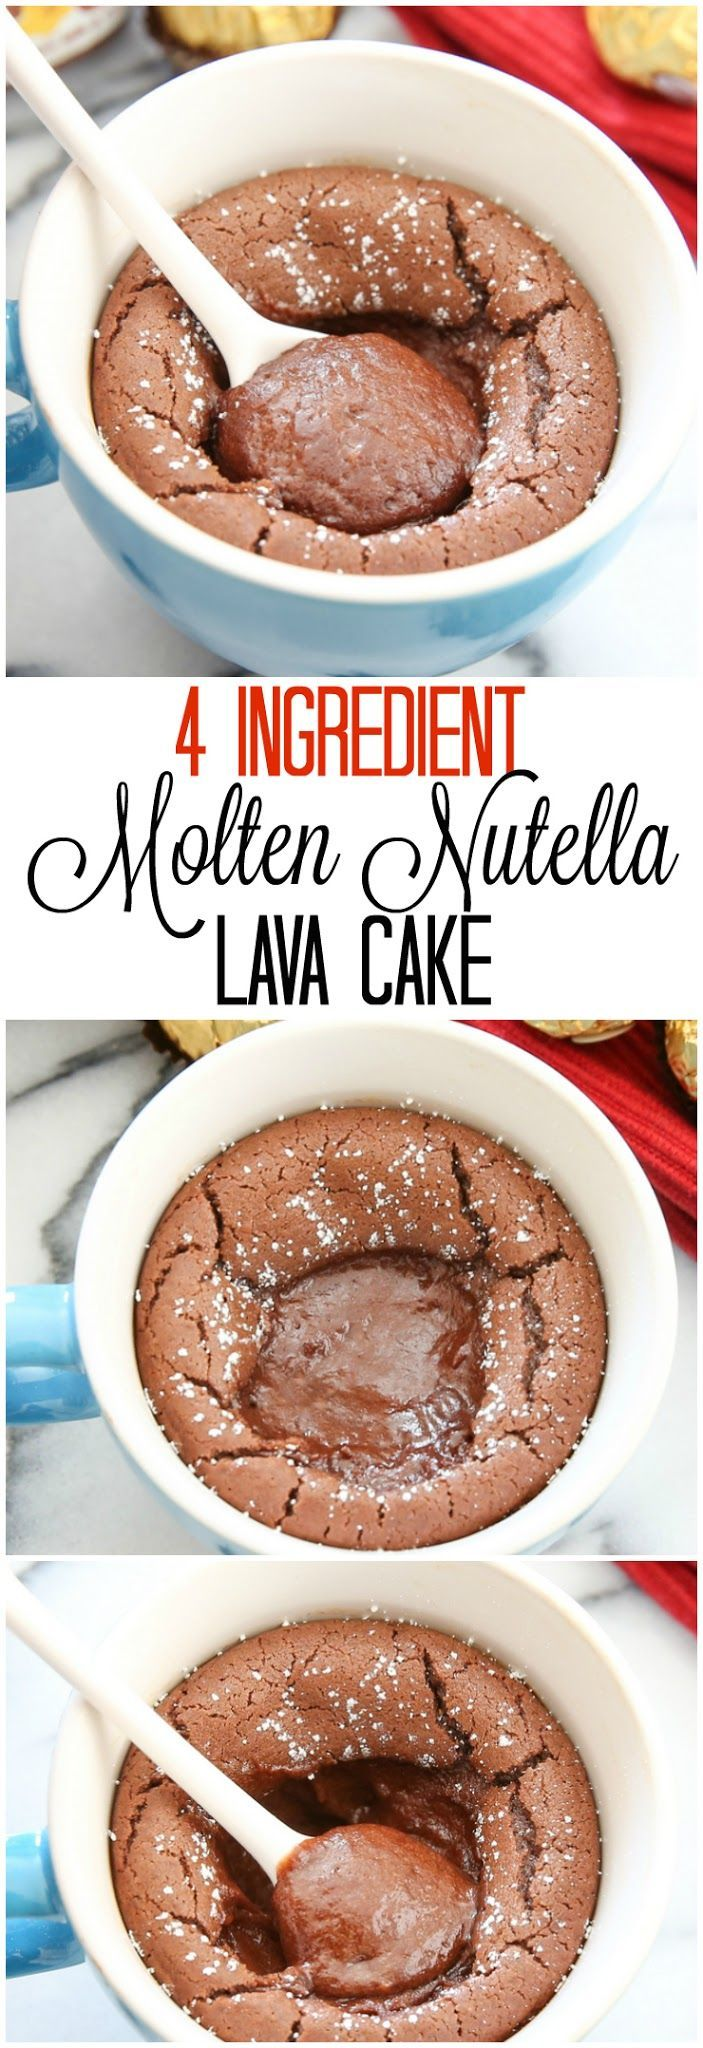 4 Ingredient Molten Nutella Lava Mug Cake | Kirbie's Cravings | A San Diego food & travel blog